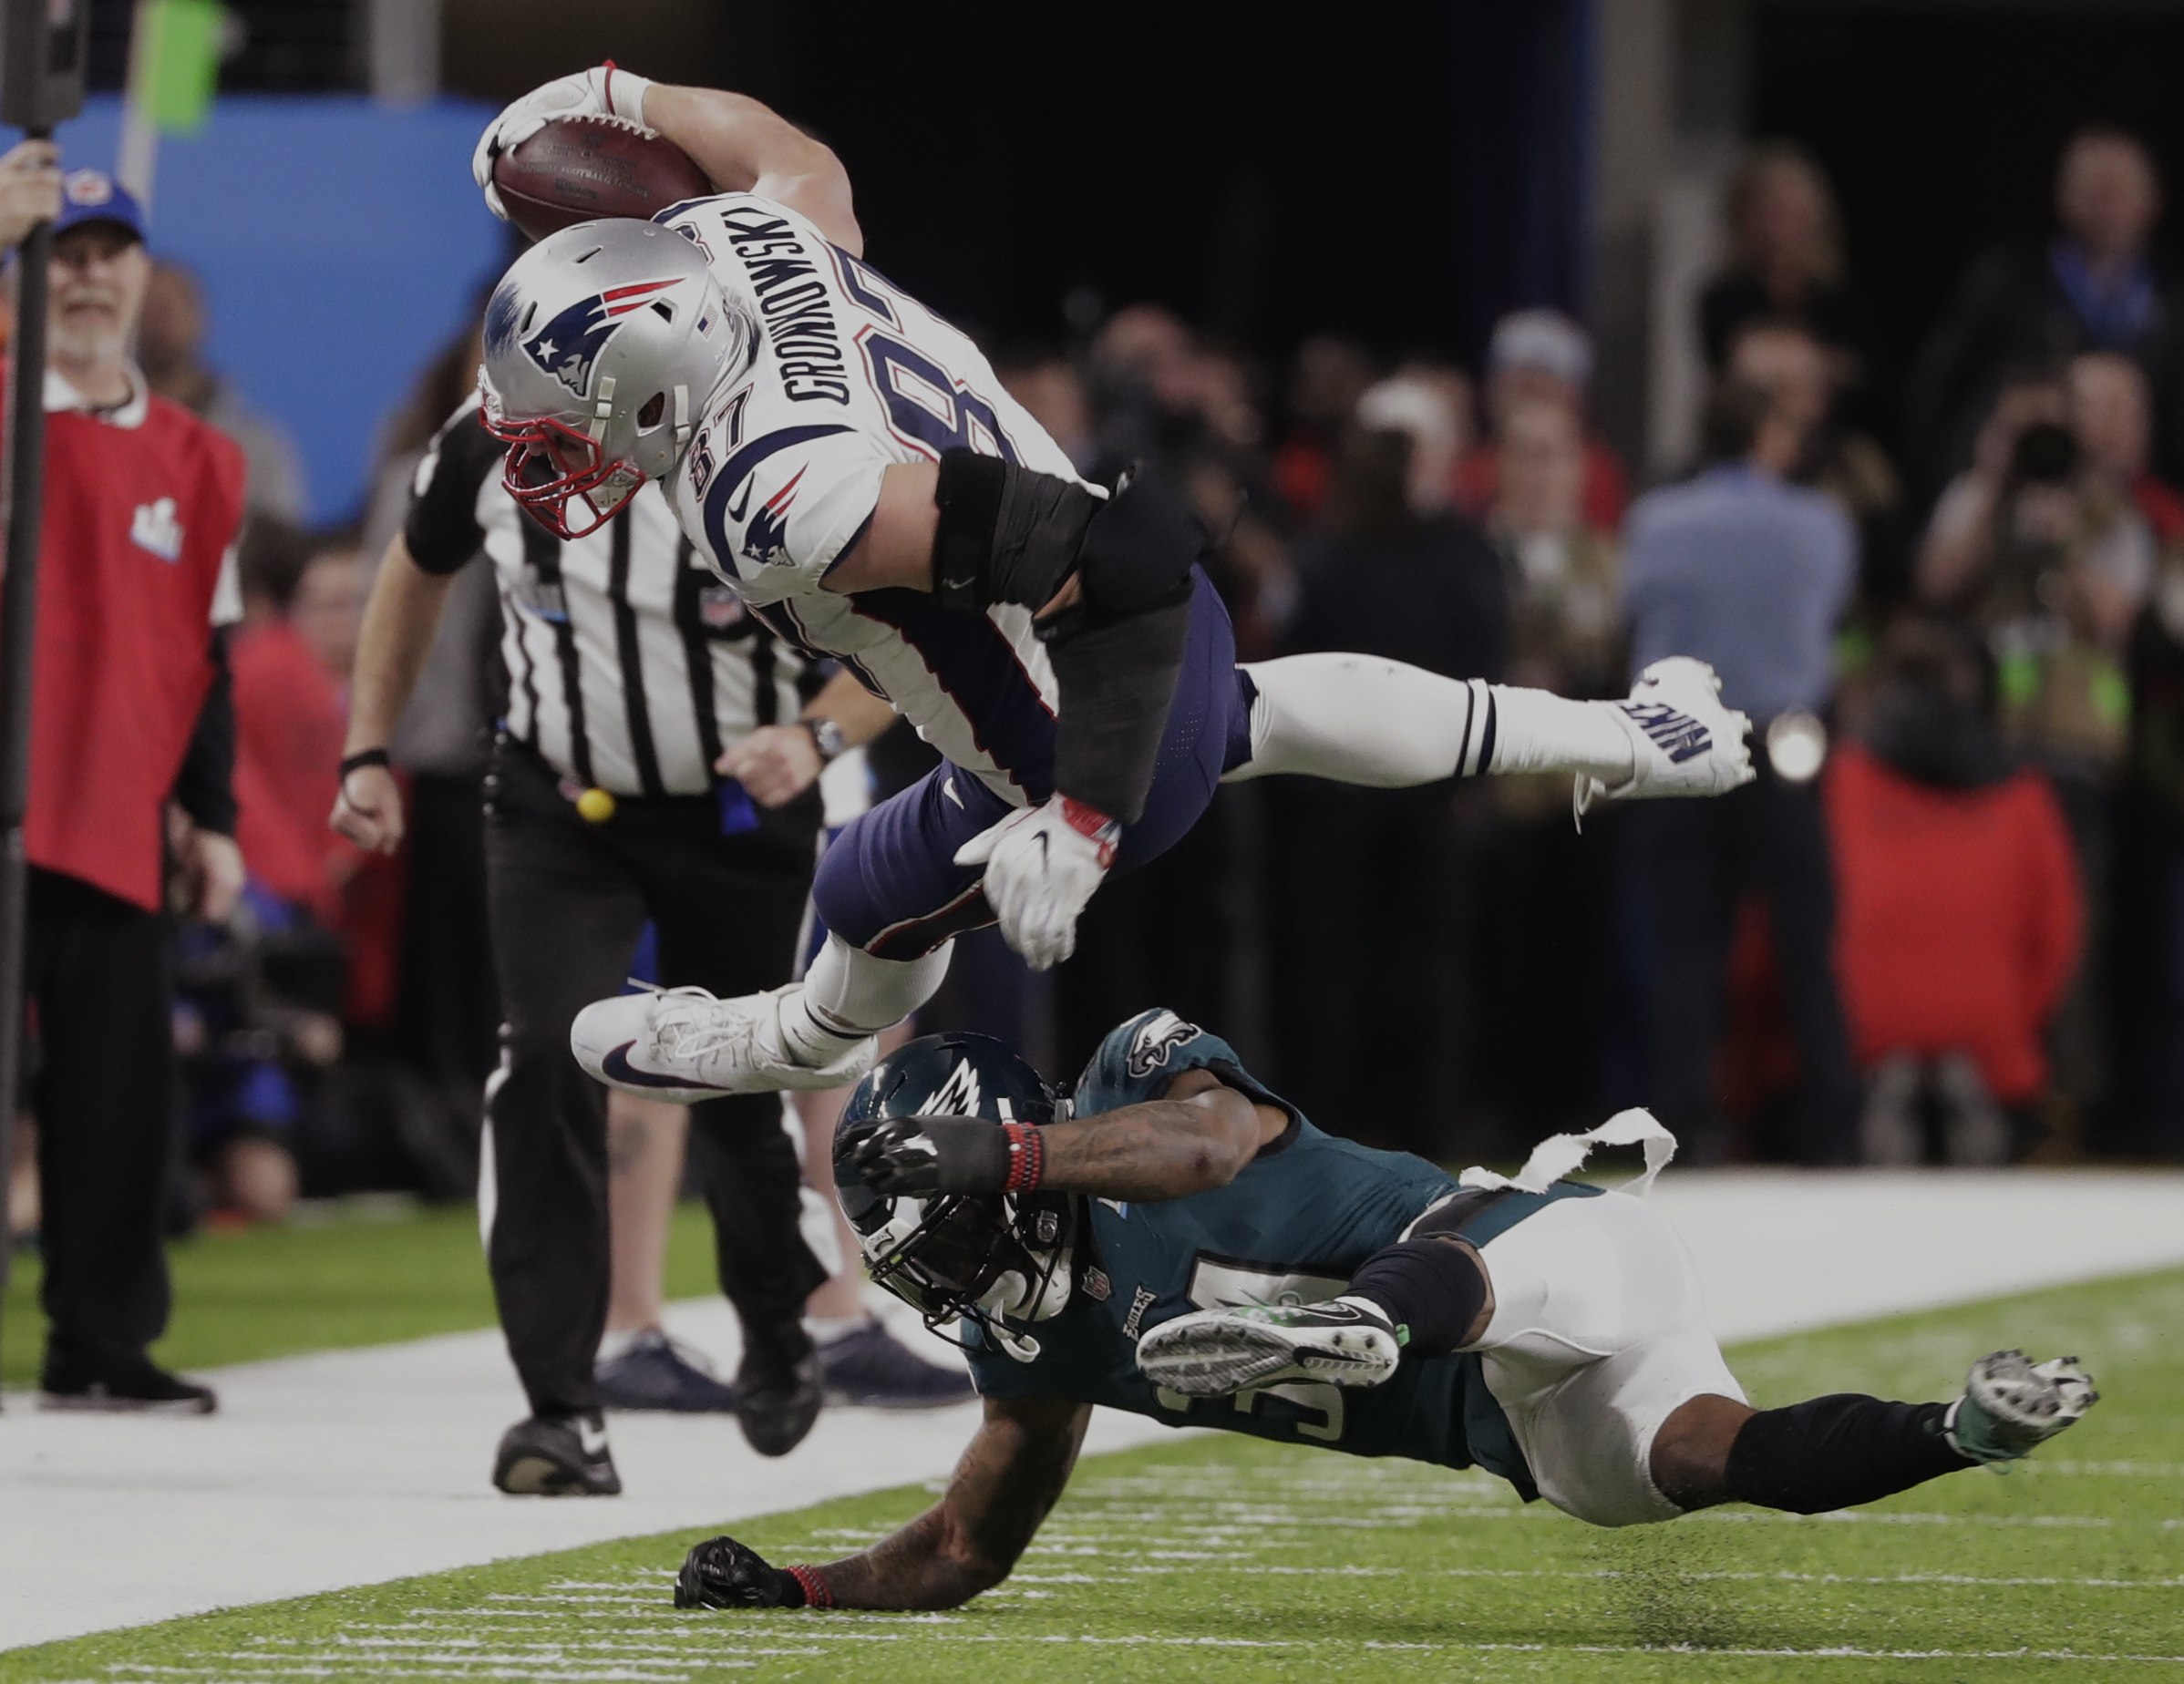 <div class='meta'><div class='origin-logo' data-origin='AP'></div><span class='caption-text' data-credit='AP Photo/Tony Gutierrez'>Philadelphia Eagles cornerback Jalen Mills (31) tackles New England Patriots tight end Rob Gronkowski (87), during the second half.</span></div>